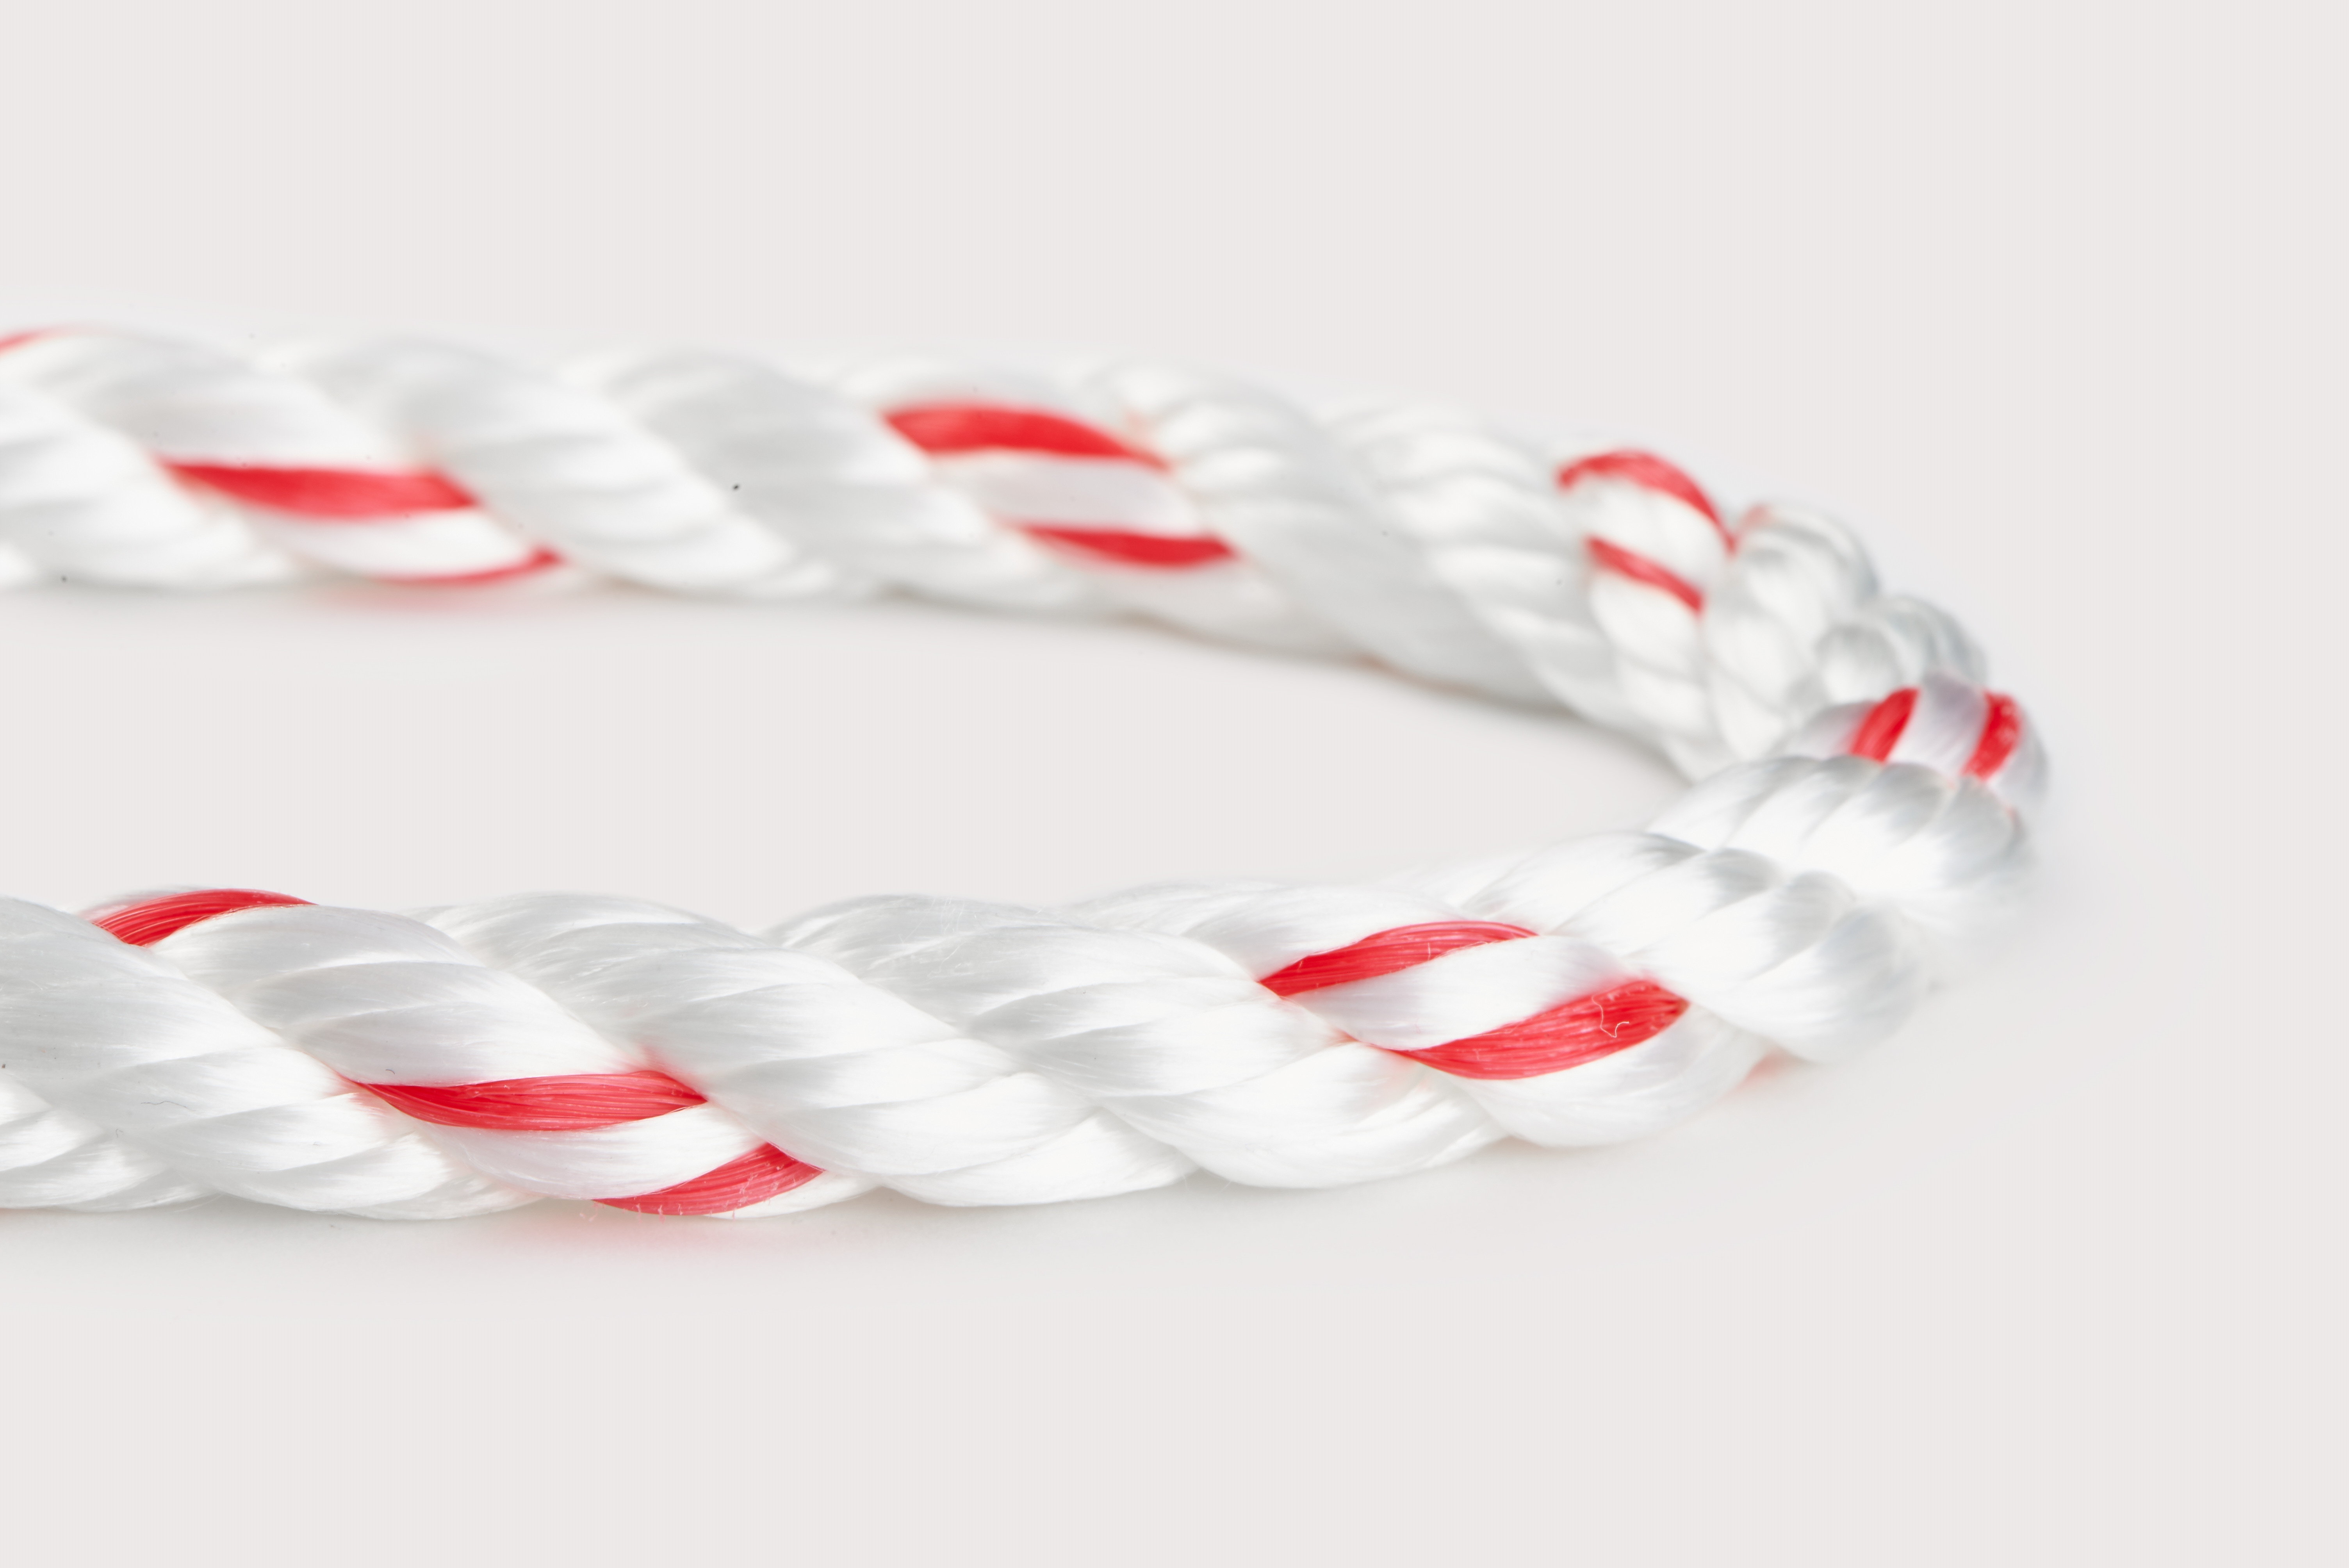 Orion-Cordage-Poly Plus Premium 3-Strand Combination-White I Red-Curved191.jpg